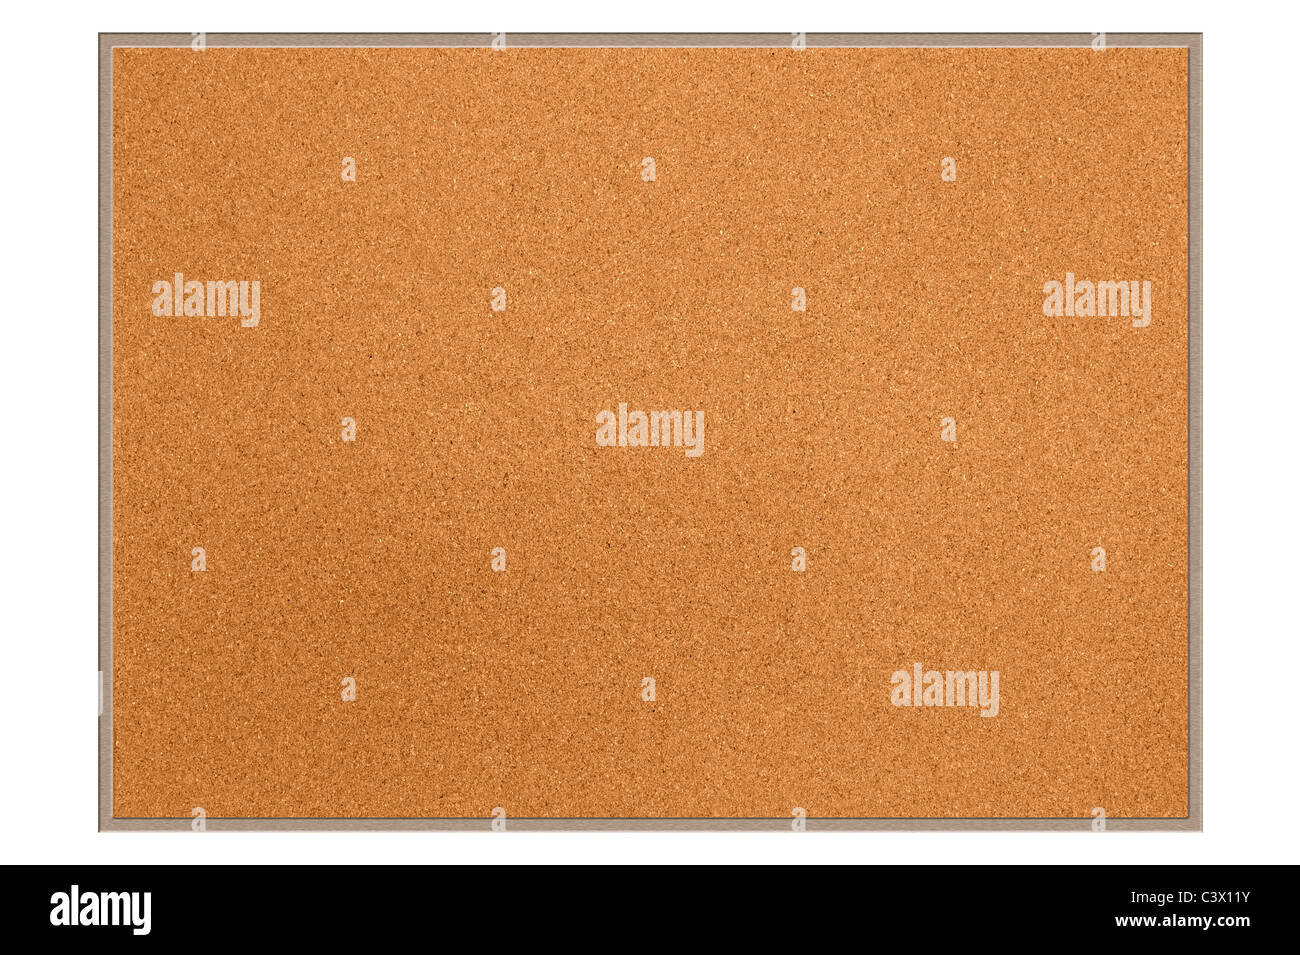 A new empty cork board for use as is or for designers to place copy or clip art on. - Stock Image